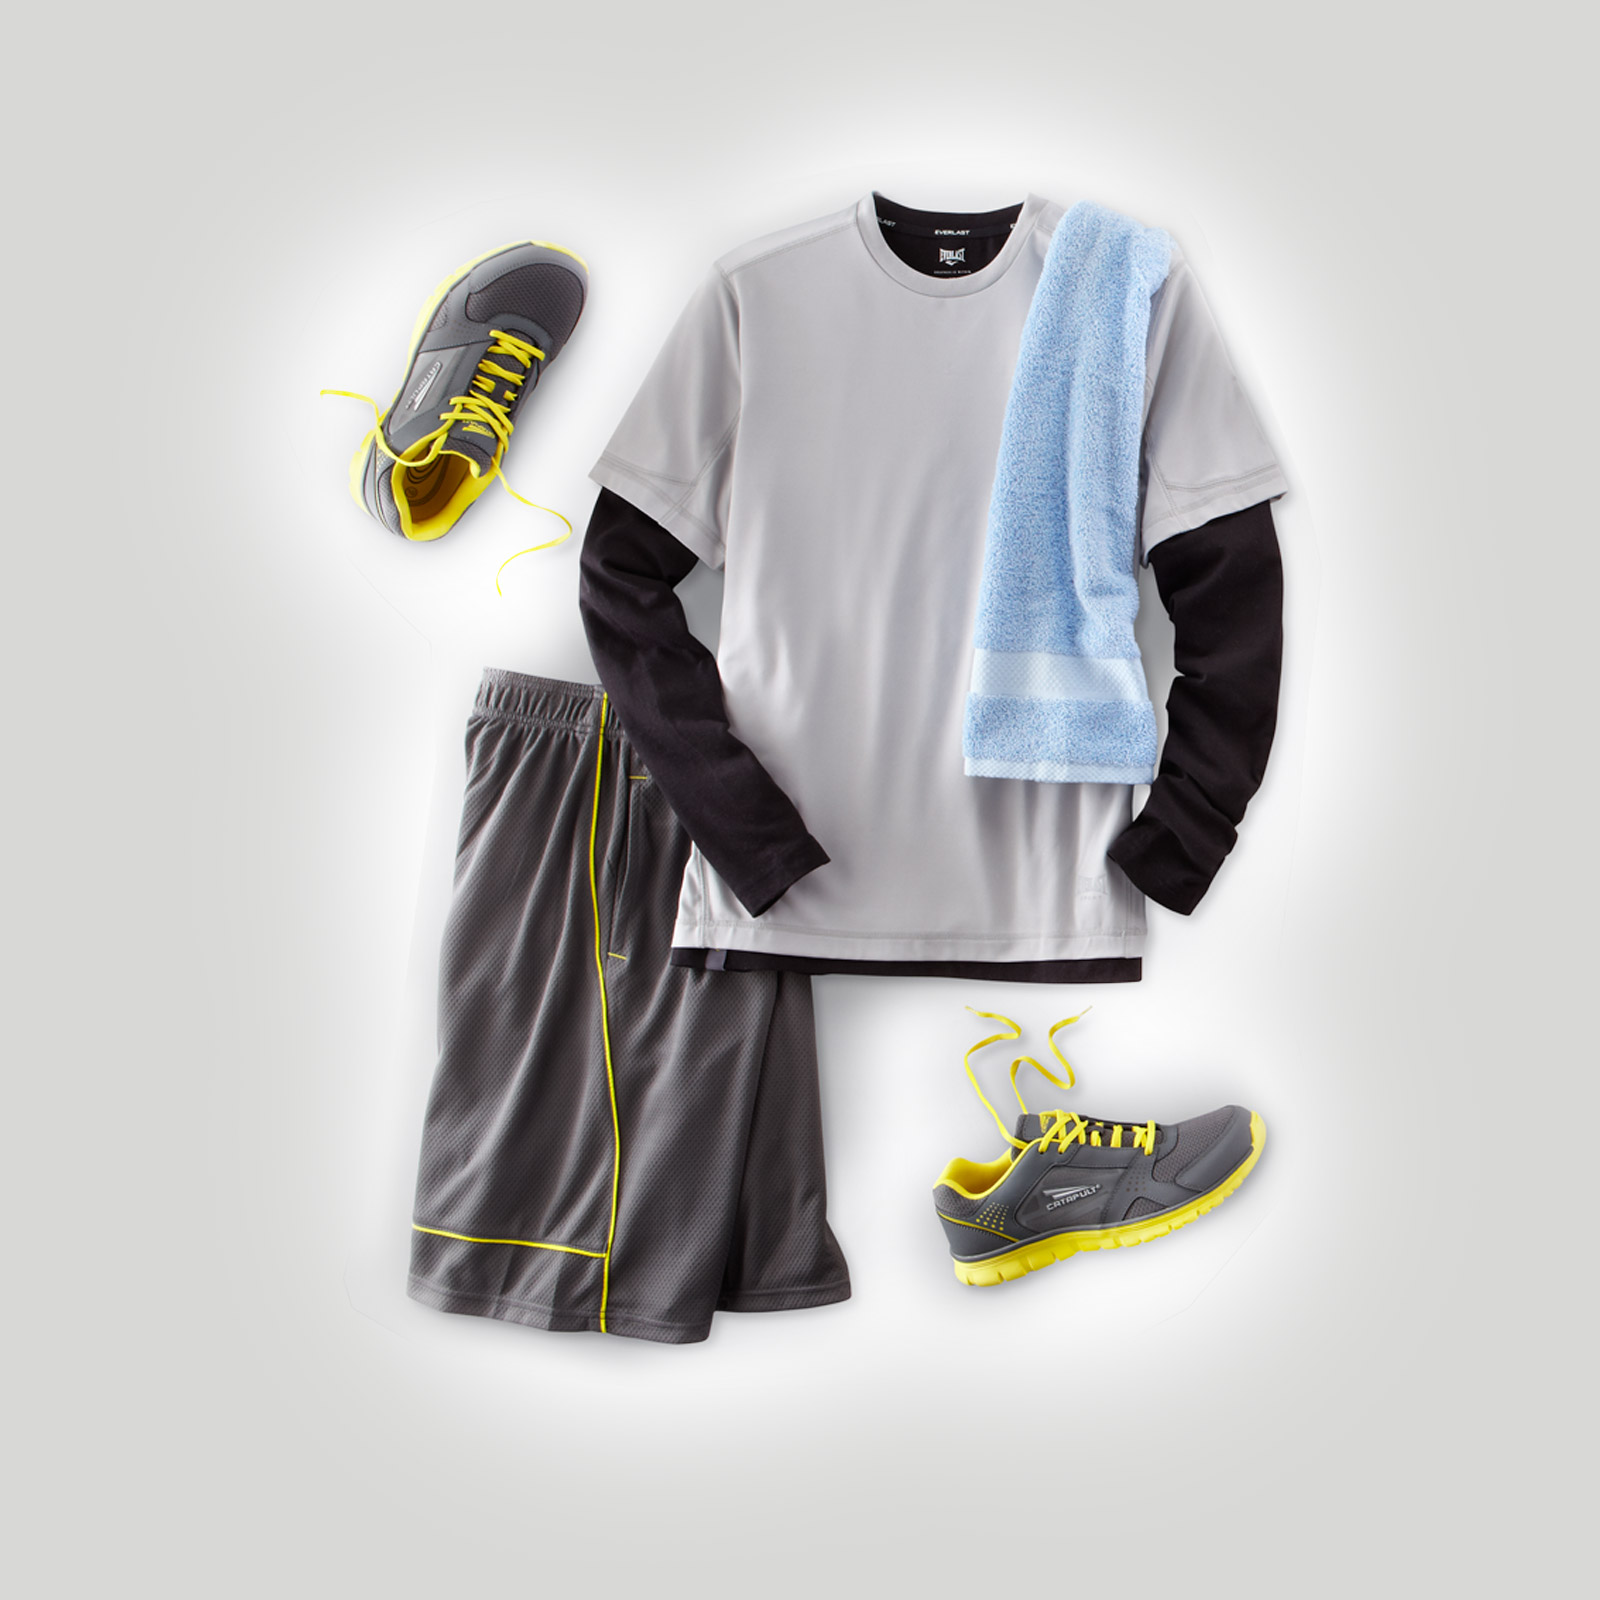 Distance Runner Outfit at Kmart.com